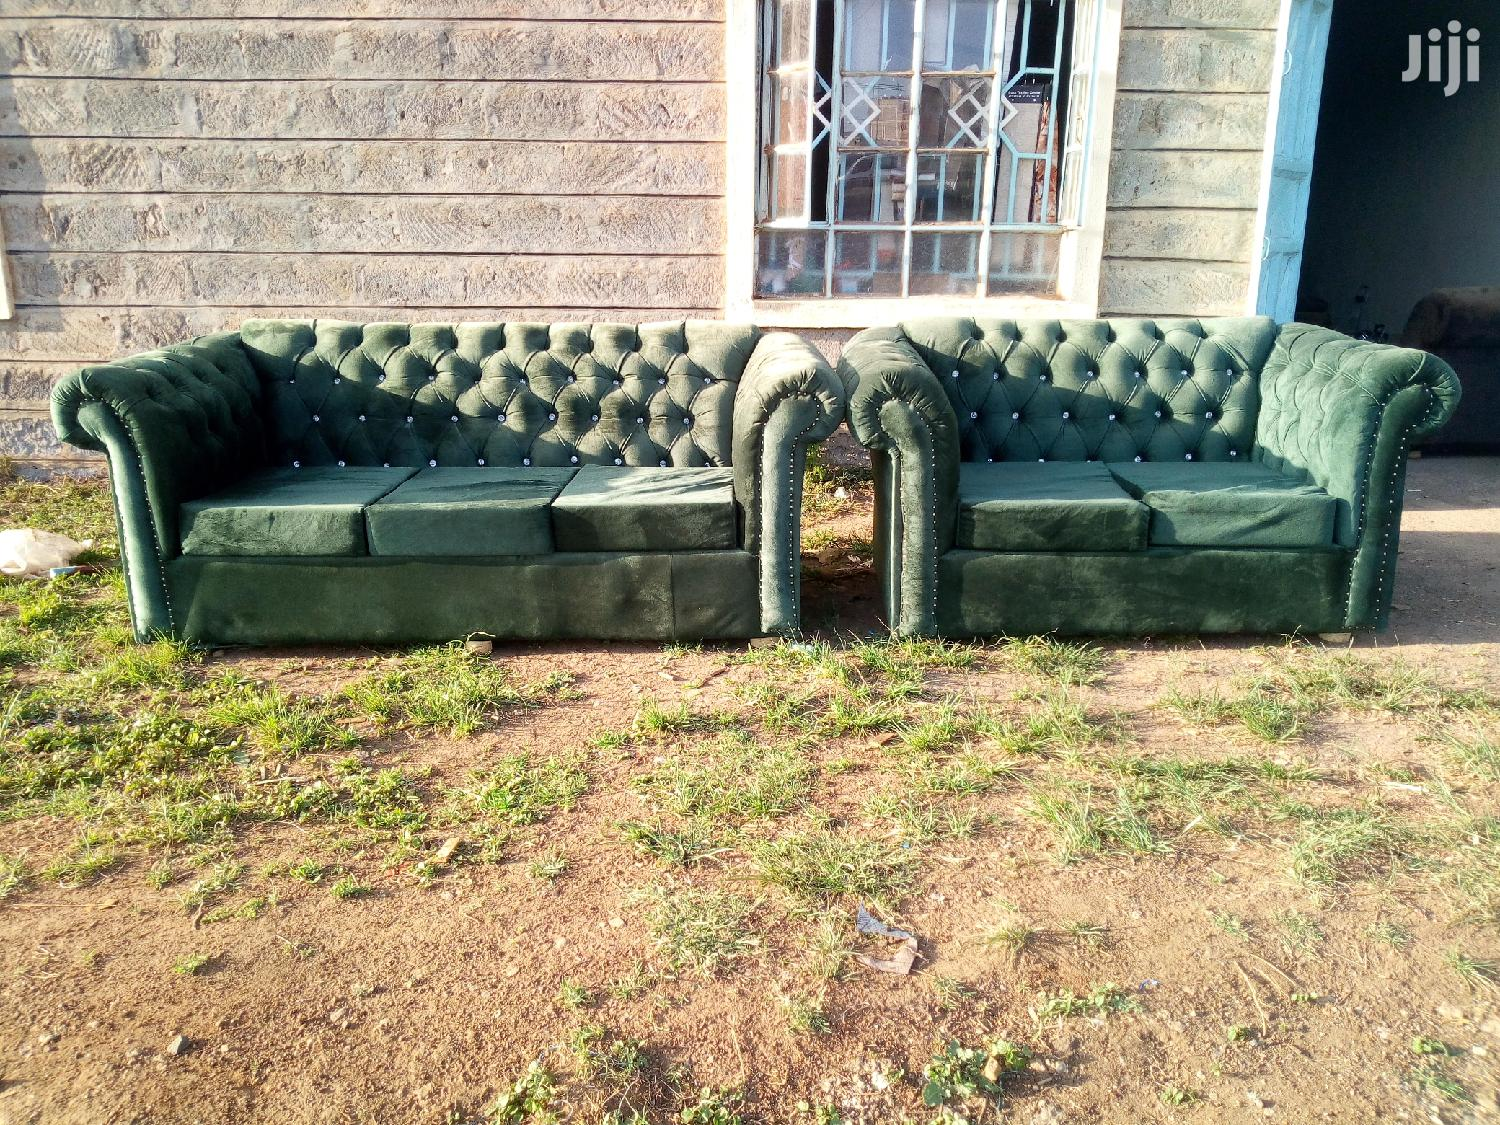 Archive Jeff Furniture Selling The Best Quality Ever In Roysambu Furniture Jefither Mwangi Jiji Co Ke